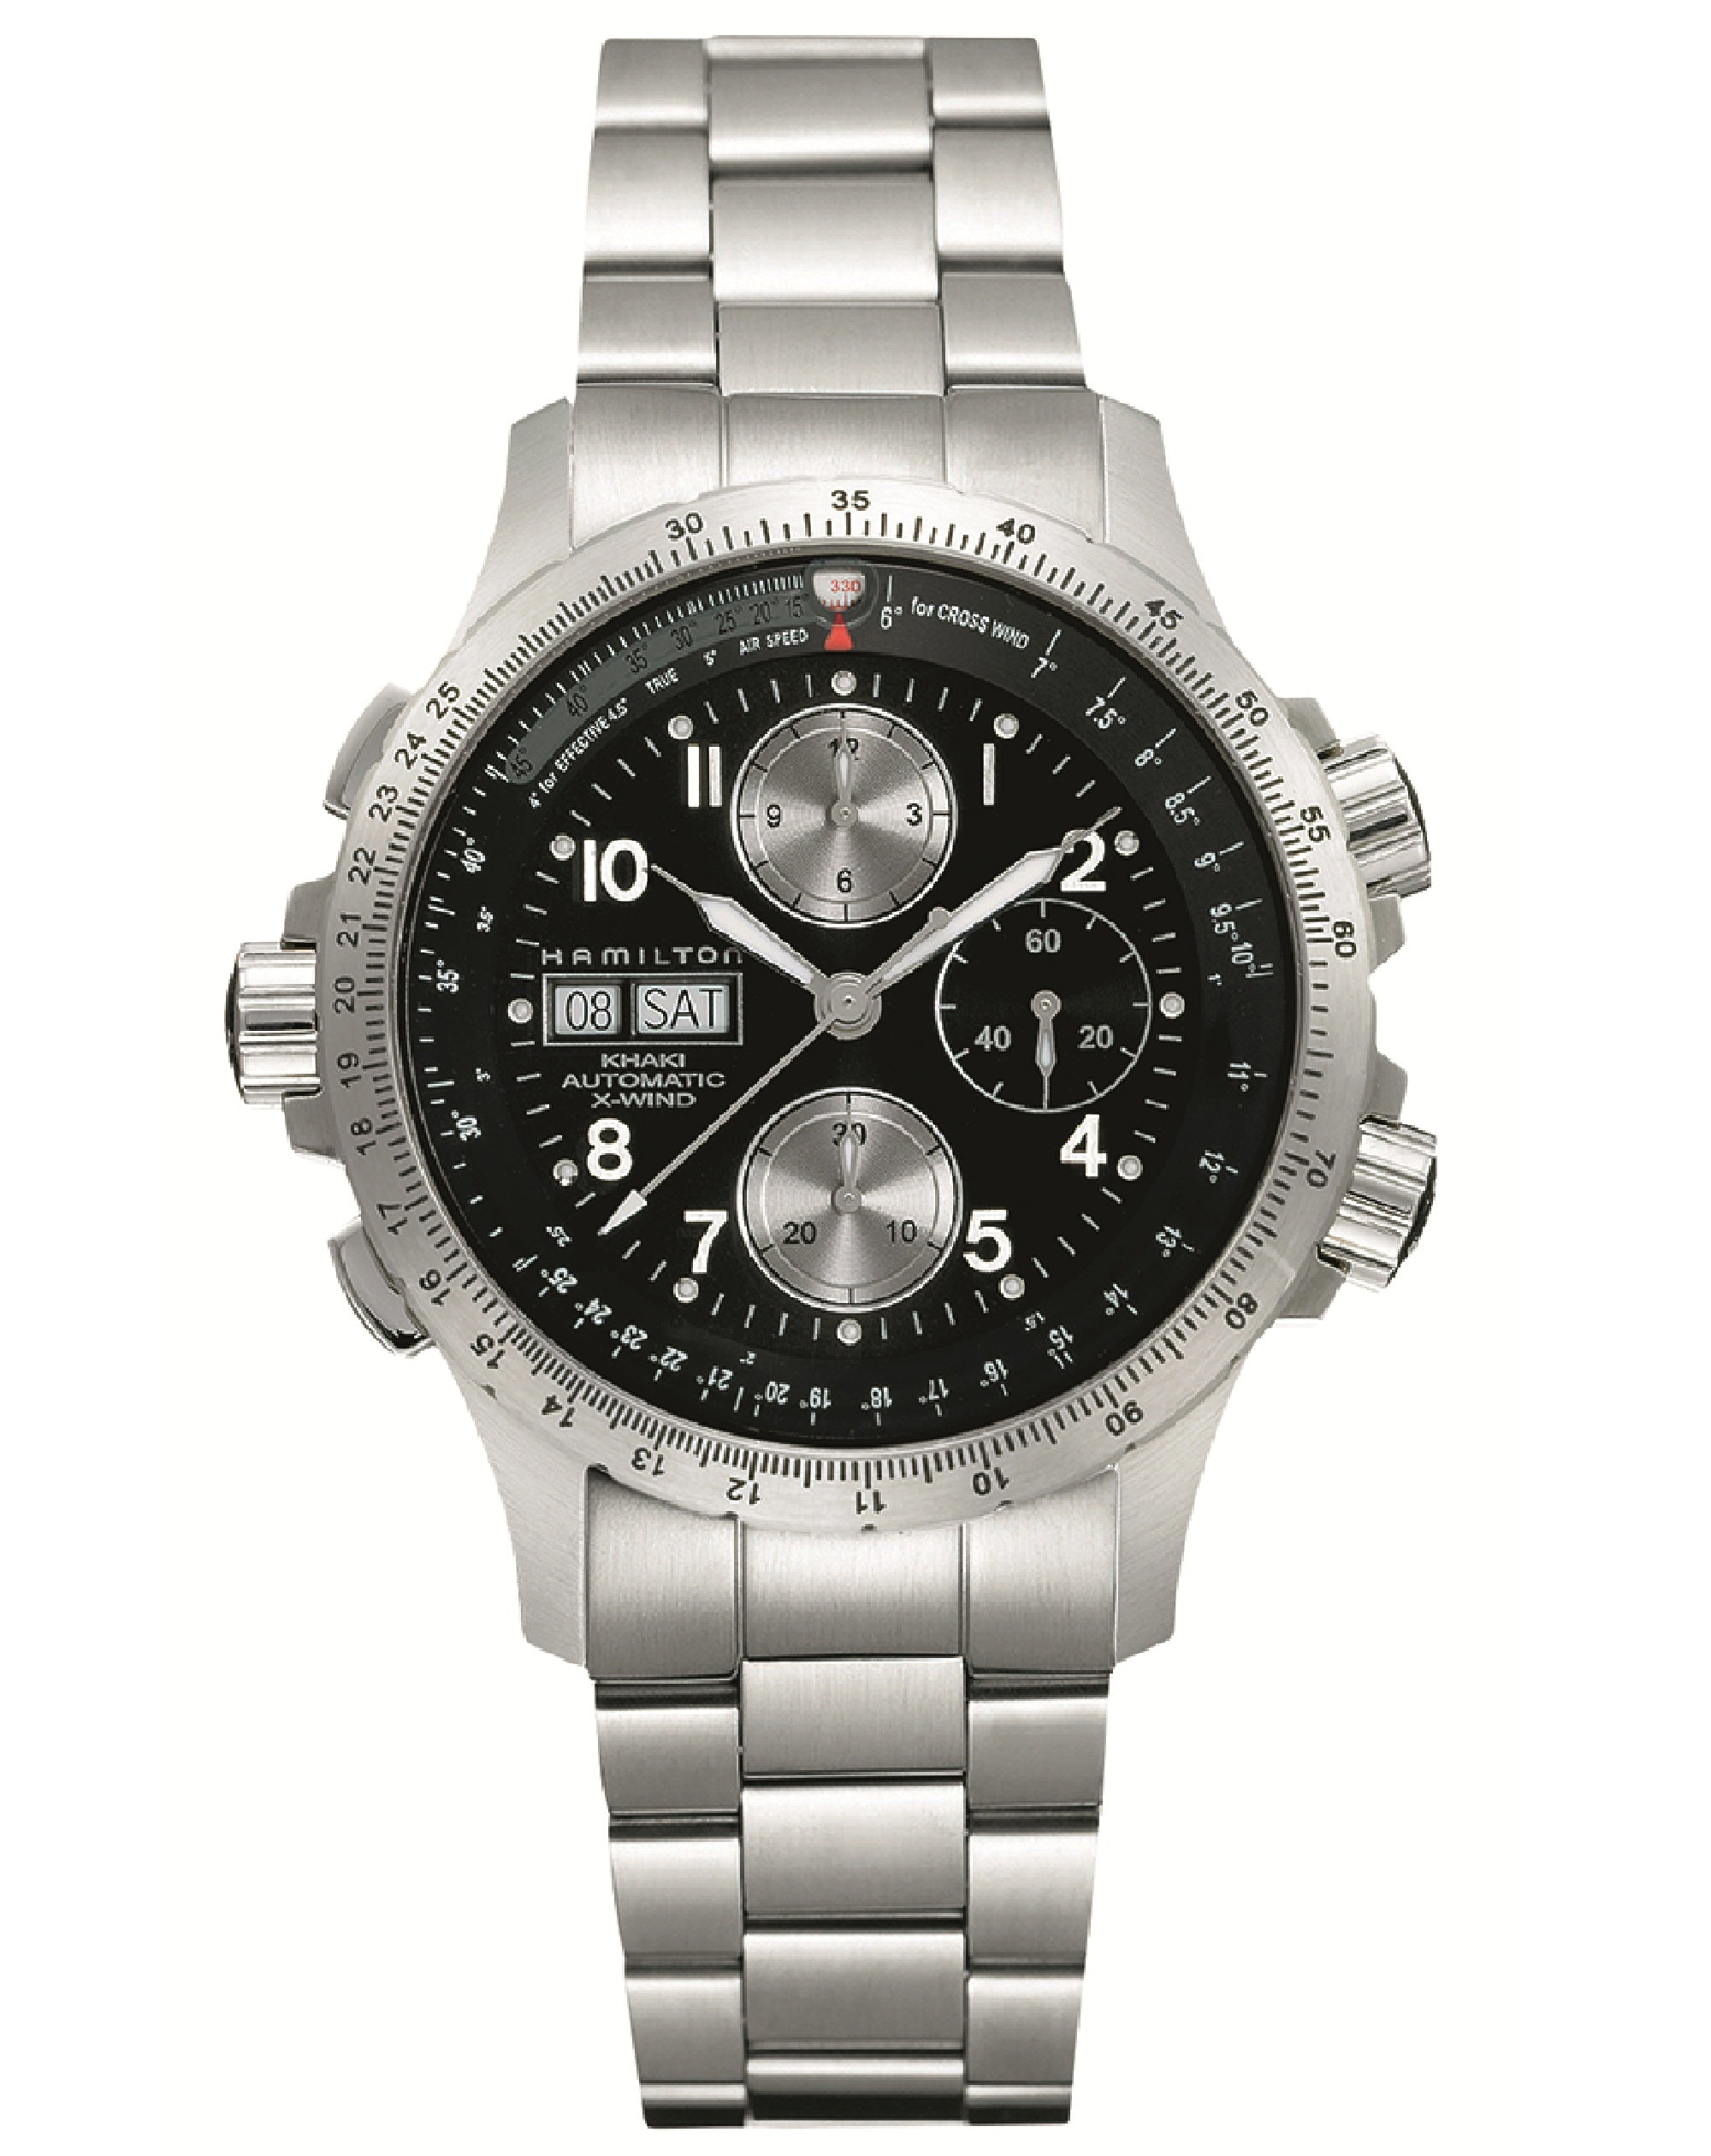 Khaki Aviation X-Wind Auto Chrono Stainless Steel Watch, H77616133